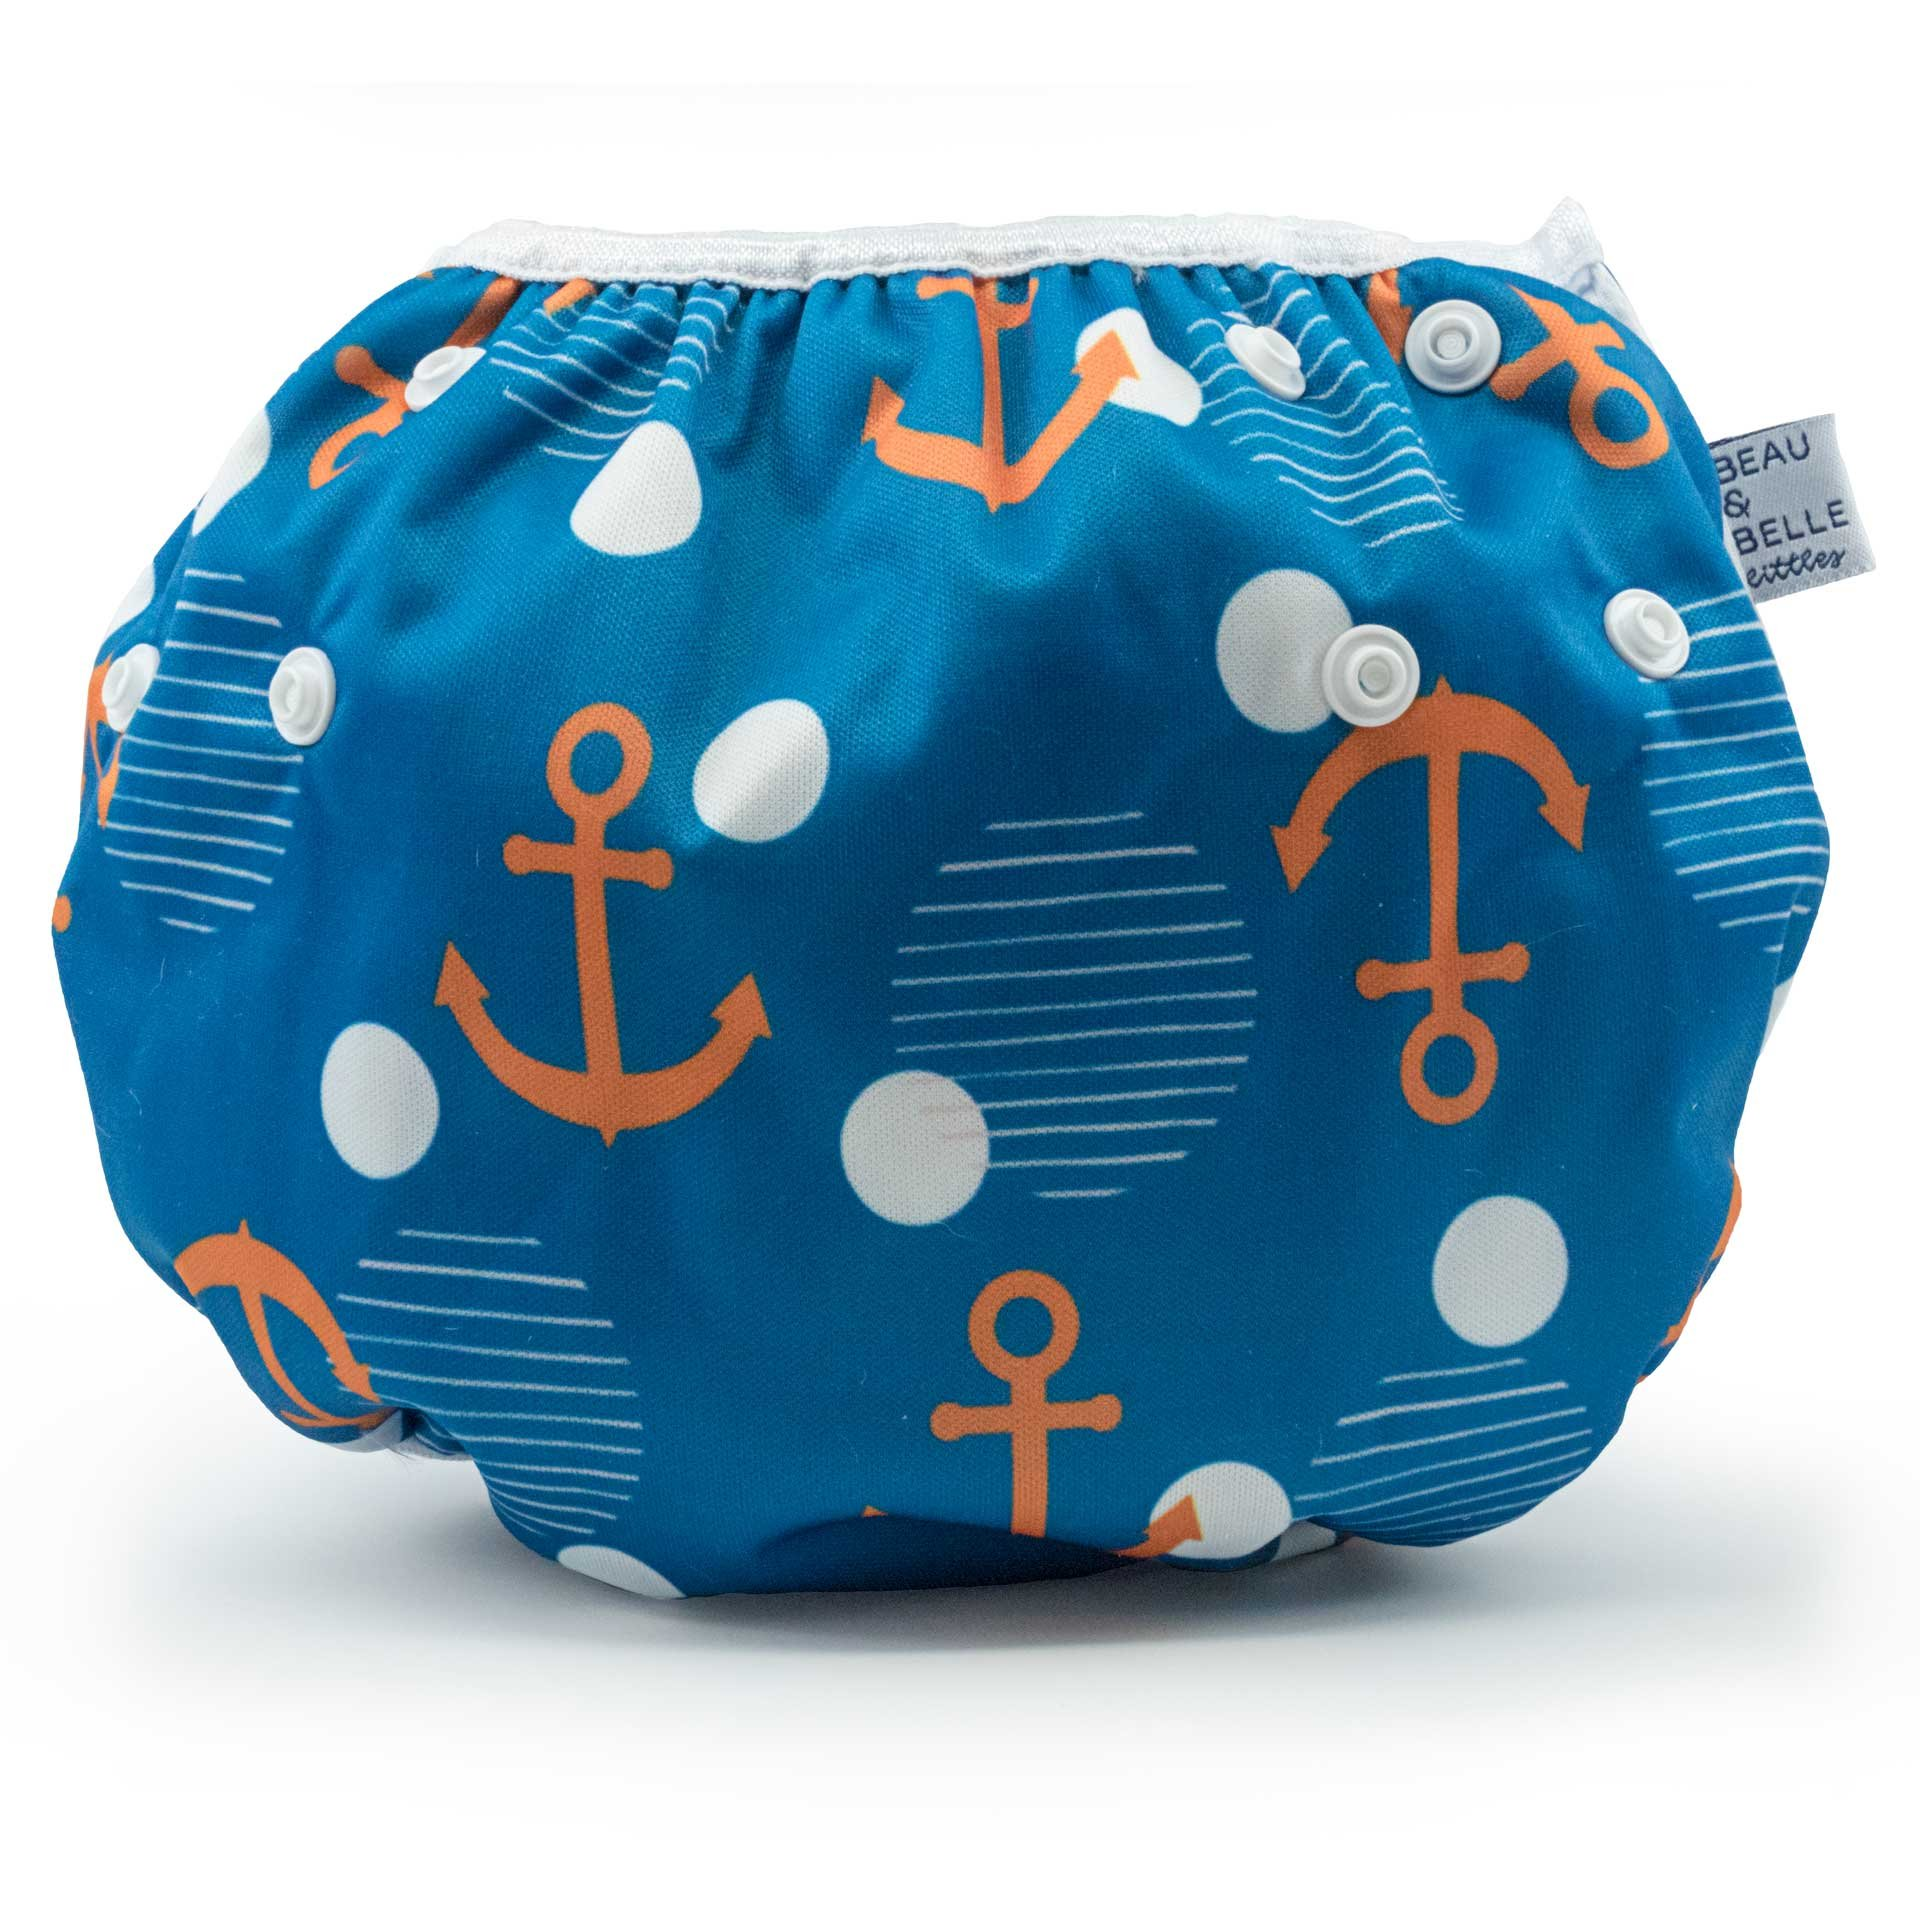 Large Nageuret Reusable Swim Diaper, Adjustable & Stylish Fits Diapers Sizes 4-7 (Approx. 20-55lbs) Ultra Premium Quality for Eco-Friendly & Swimming Lessons (Anchors)